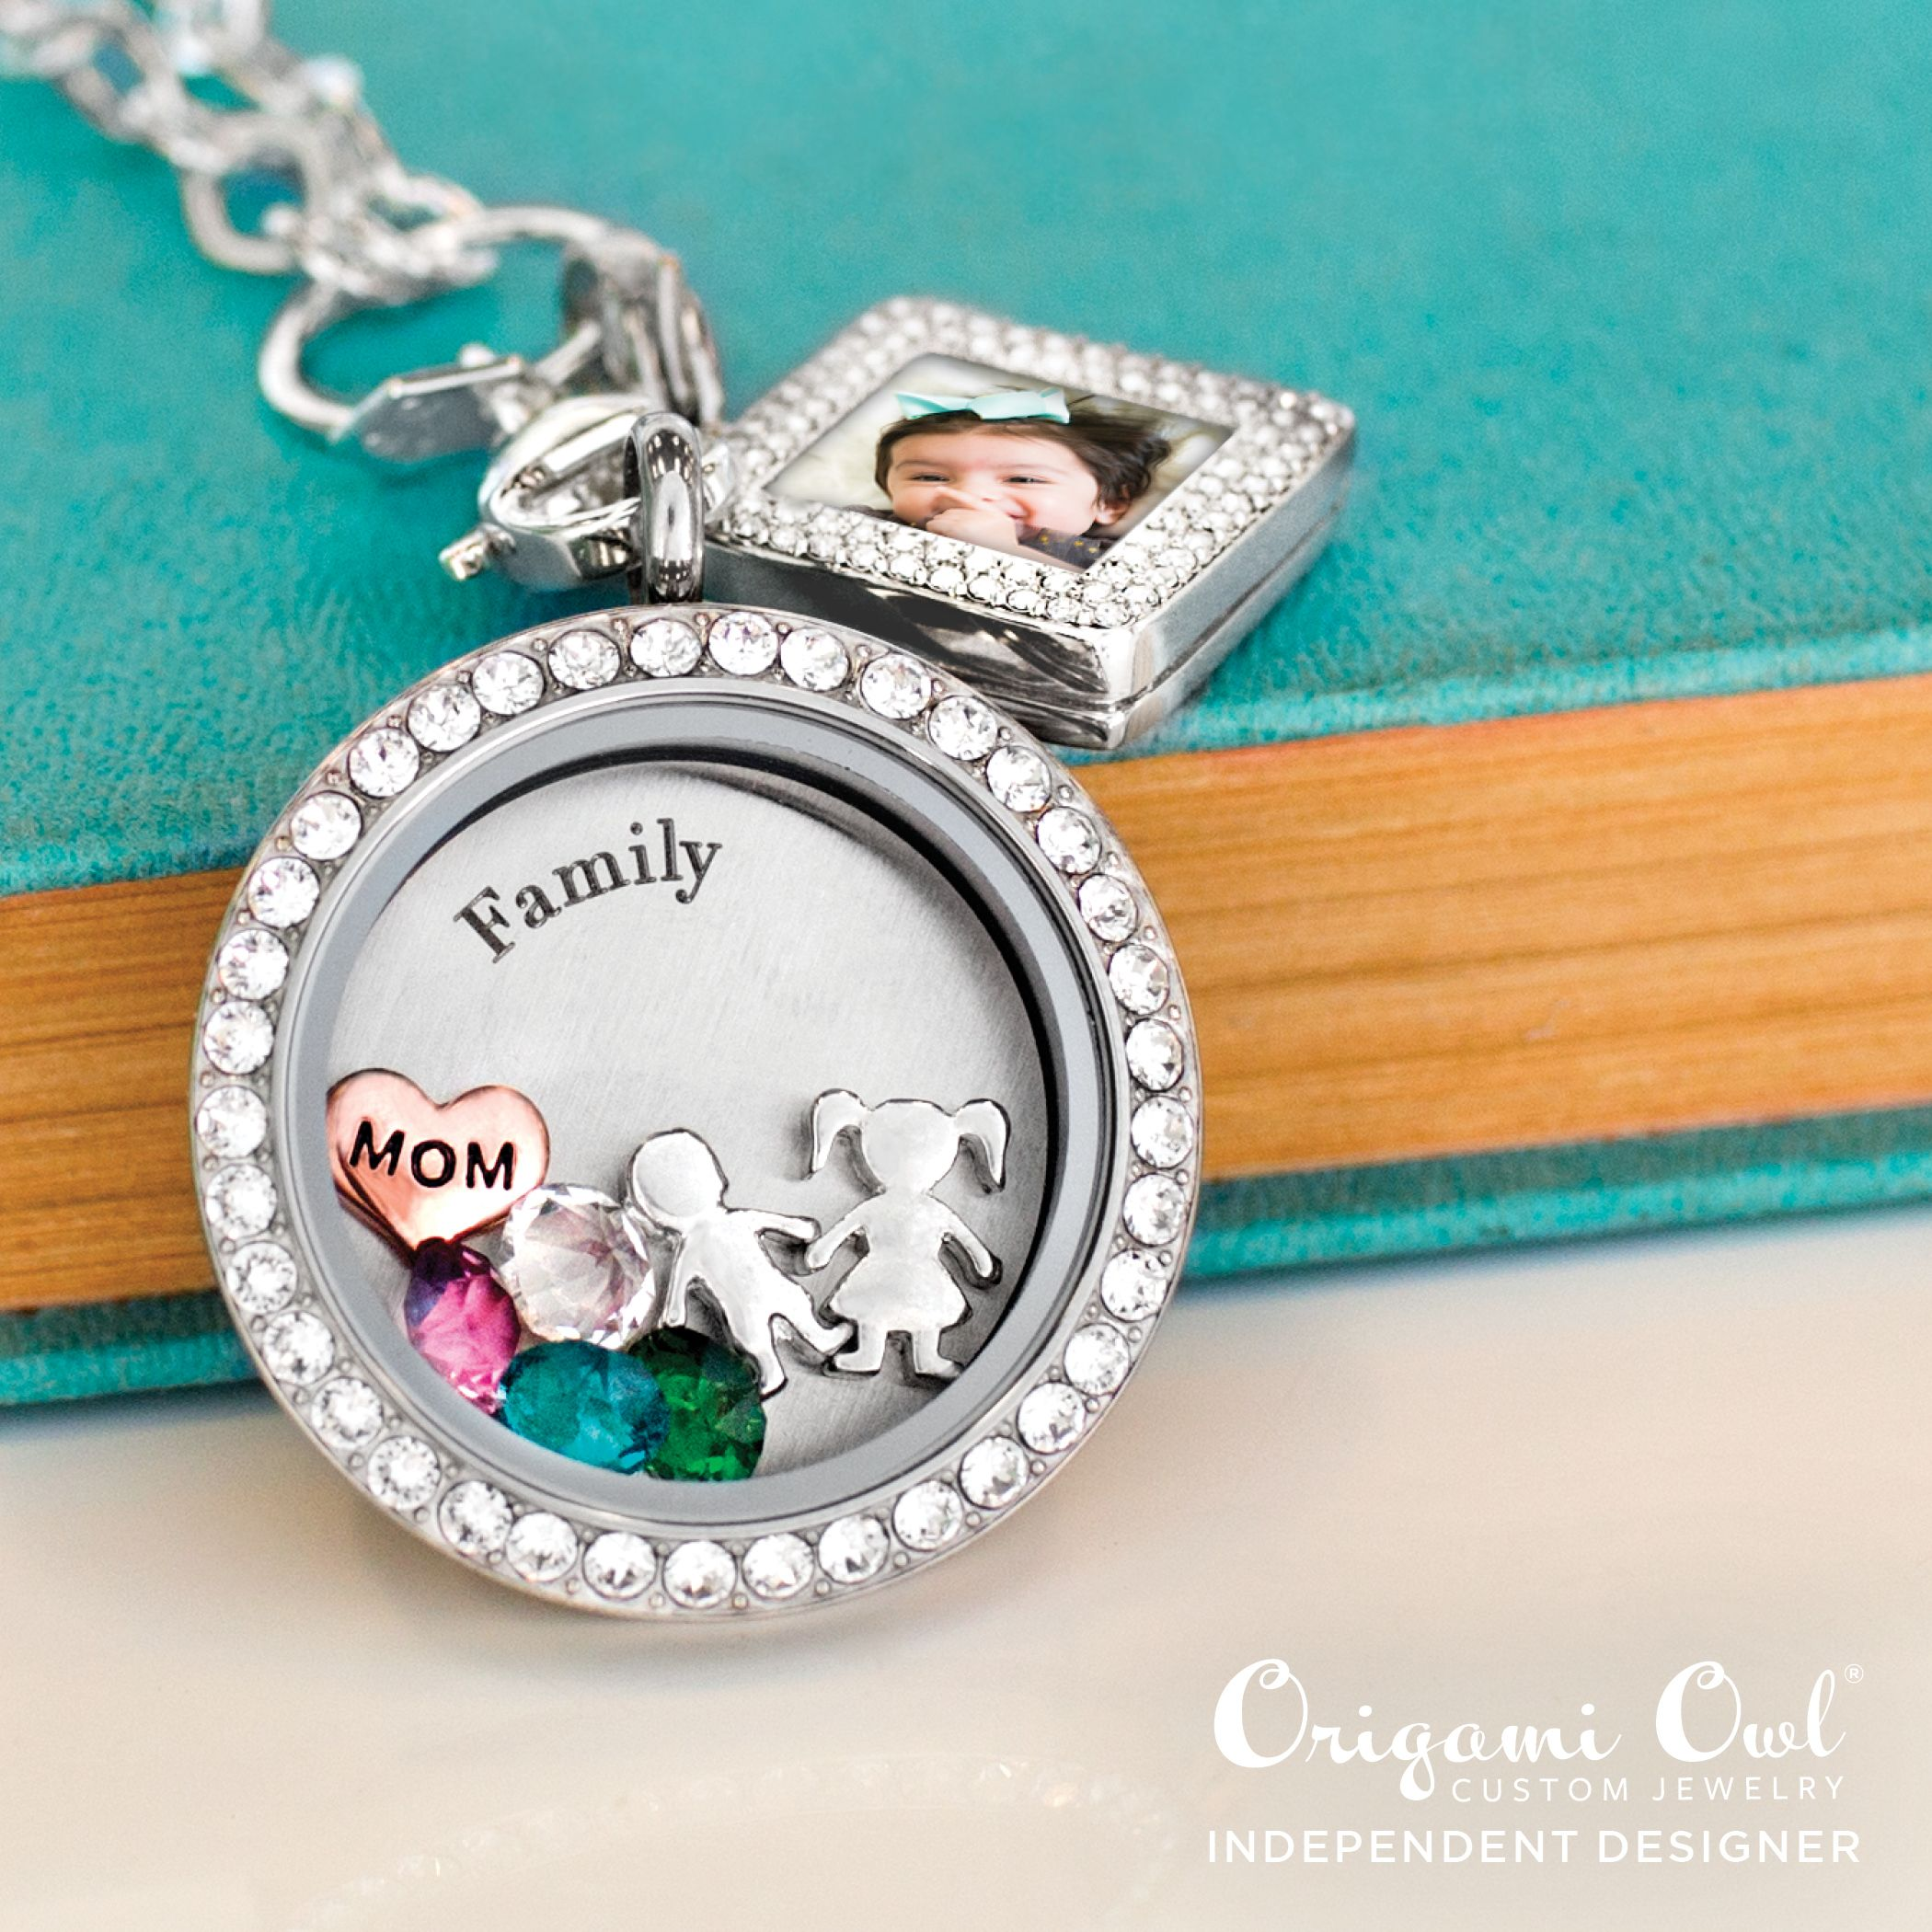 affordable from withyou beautiful jewelry coolest s zpscfmzkbpj guide with the keepsake photo day gift lockets and you personalized mothers gifts are mother